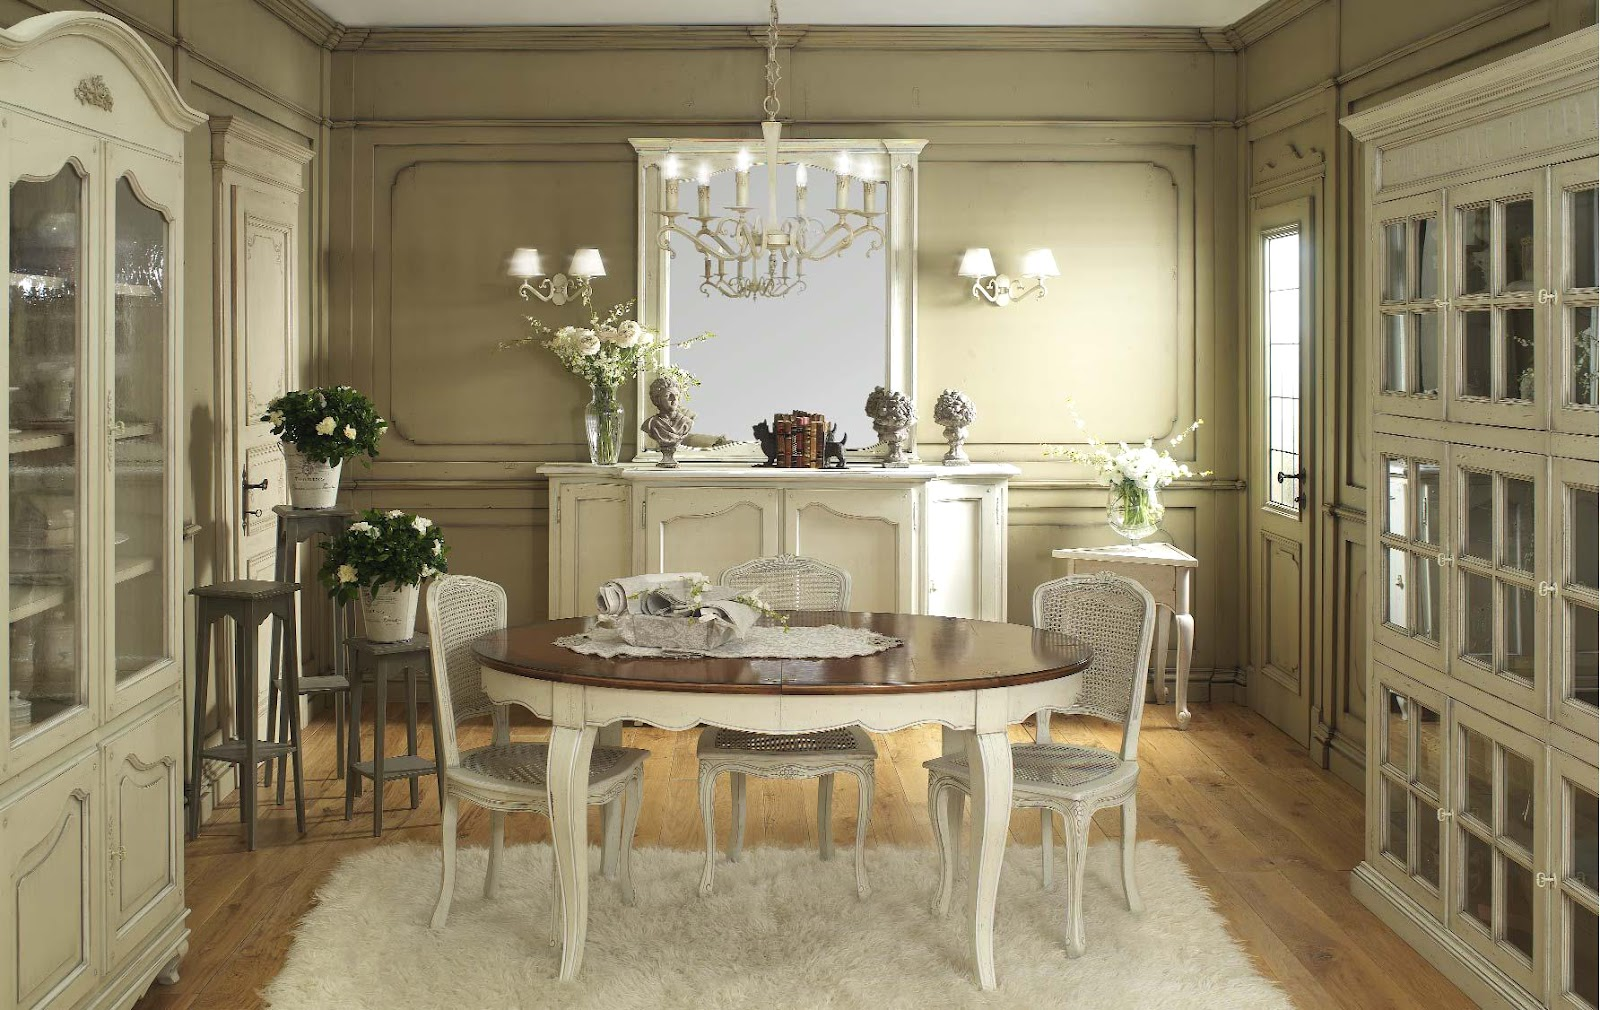 The History of Shabby Chic